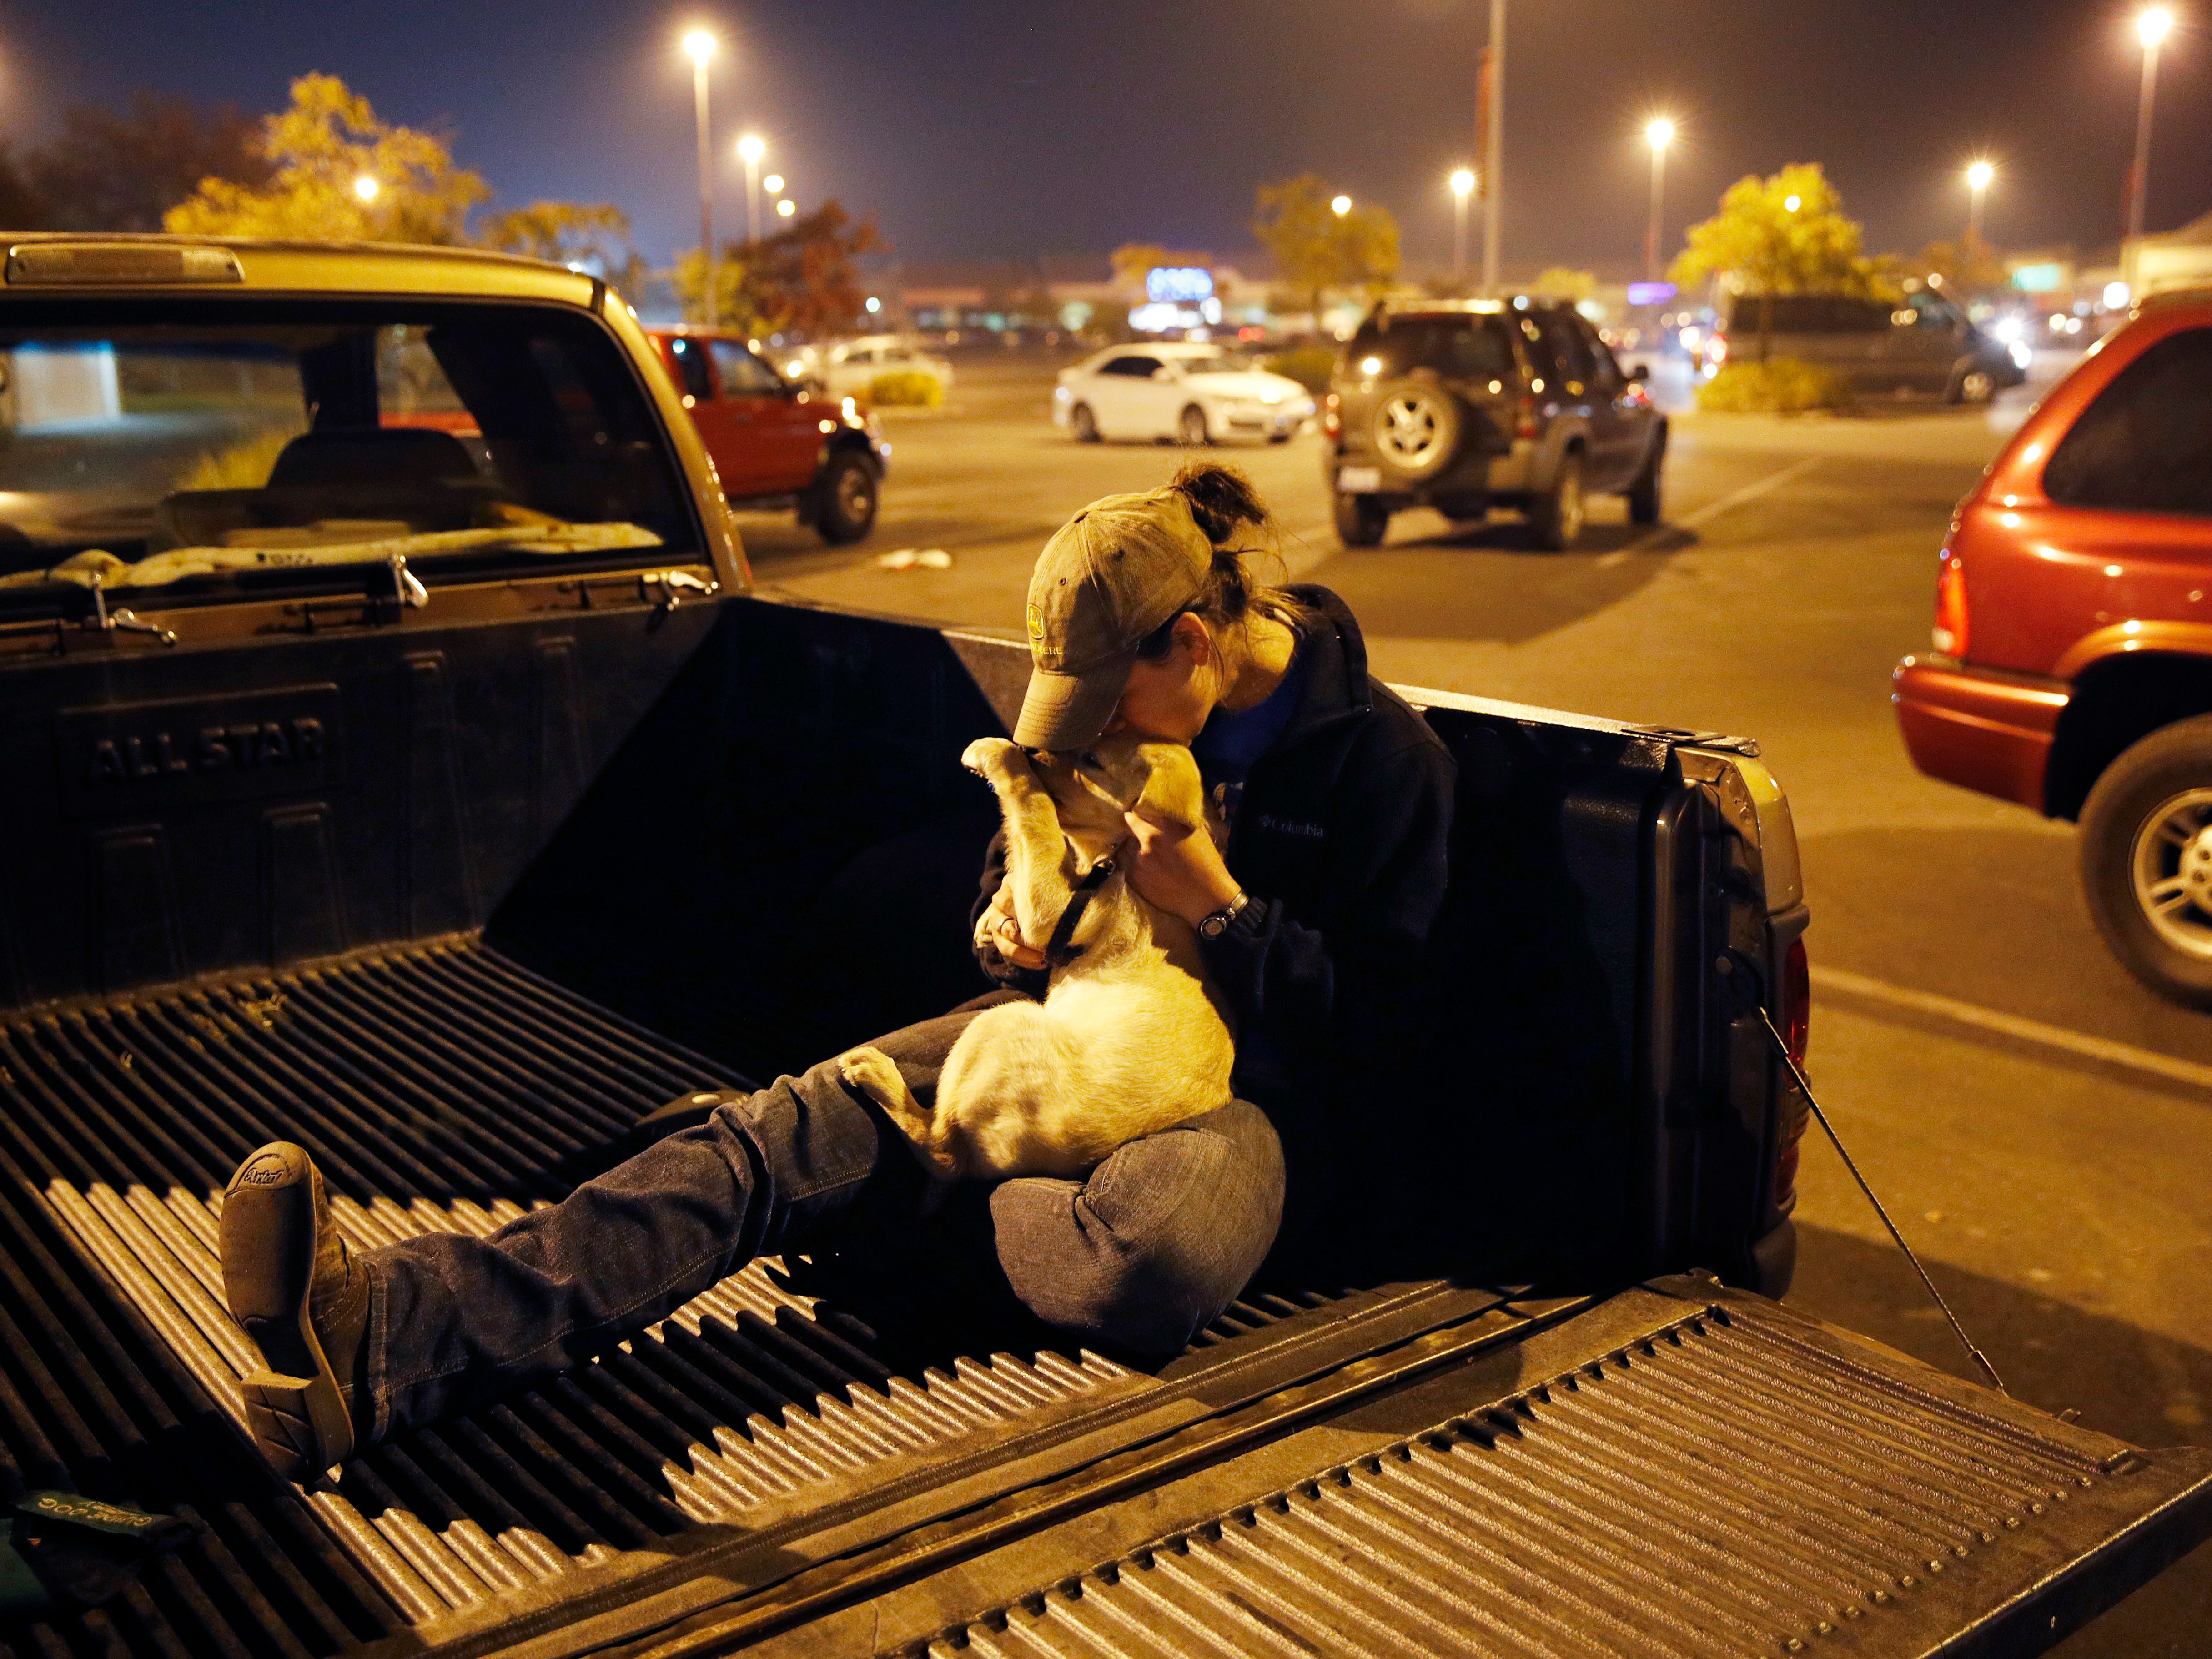 Sarah Gronseth kisses her dog Branch in the bed of a truck in a parking lot, Tuesday, Nov. 13, 2018, in Chico Calif. Gronseth, a teacher, evacuated some of her high school students in her truck as the fire bore down on the high school in Paradise, Calif. She lost her home in the fire.